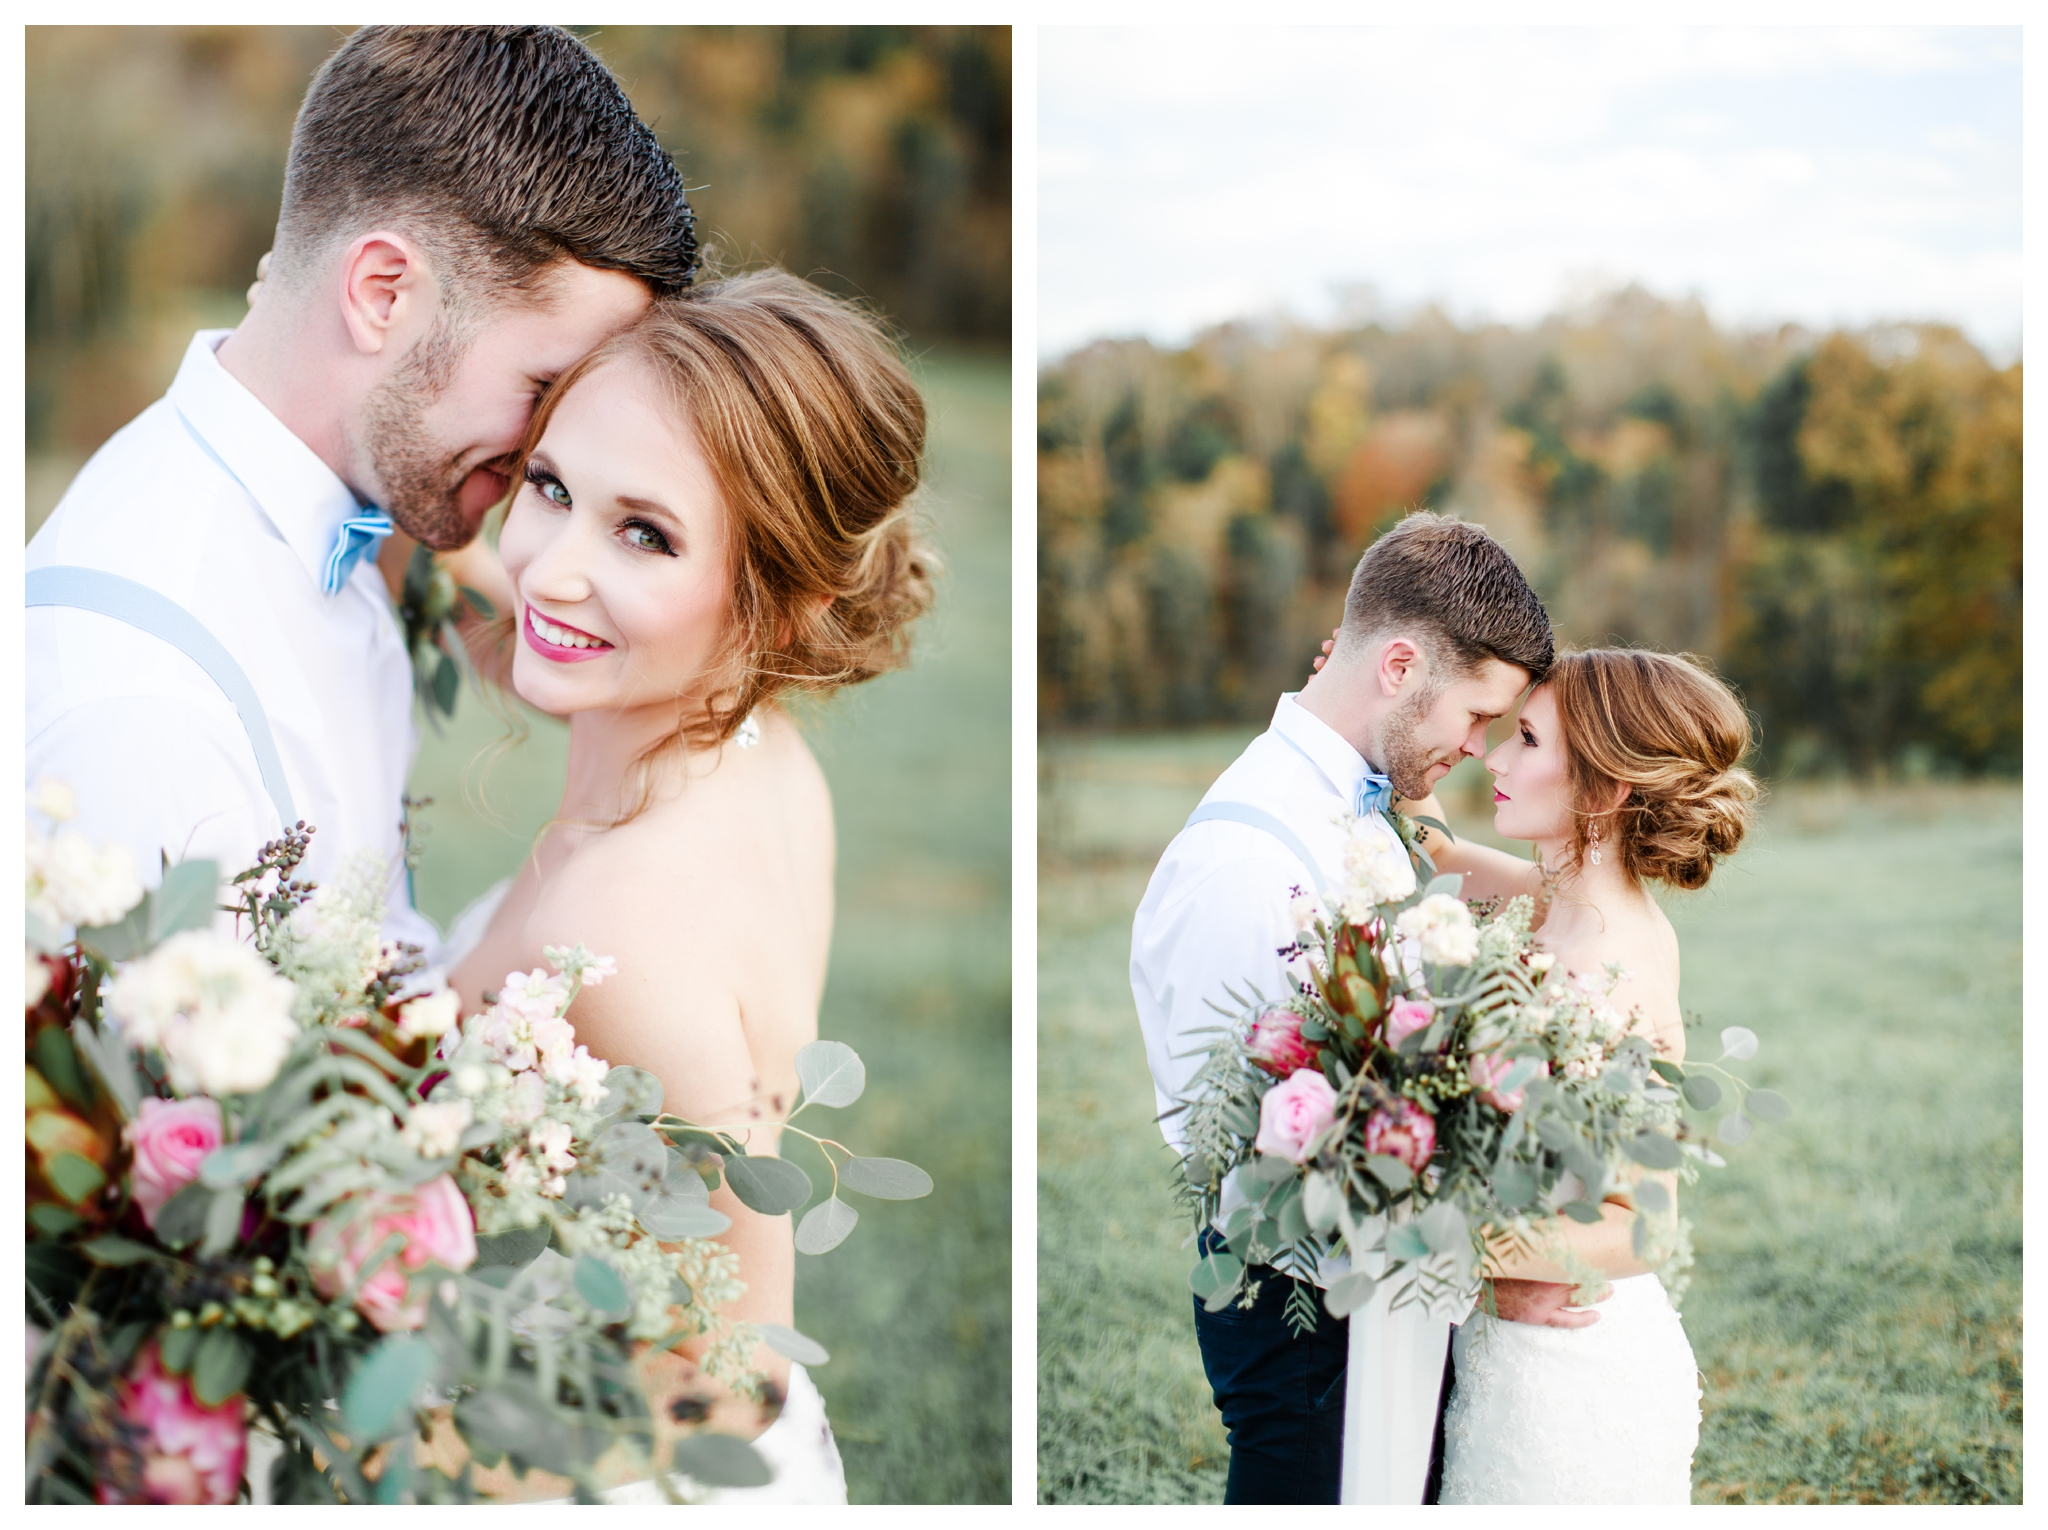 Allyography_WinterWeddingStyledPortraiture_BodockFarms_BurkesvilleKentucky-320.jpg